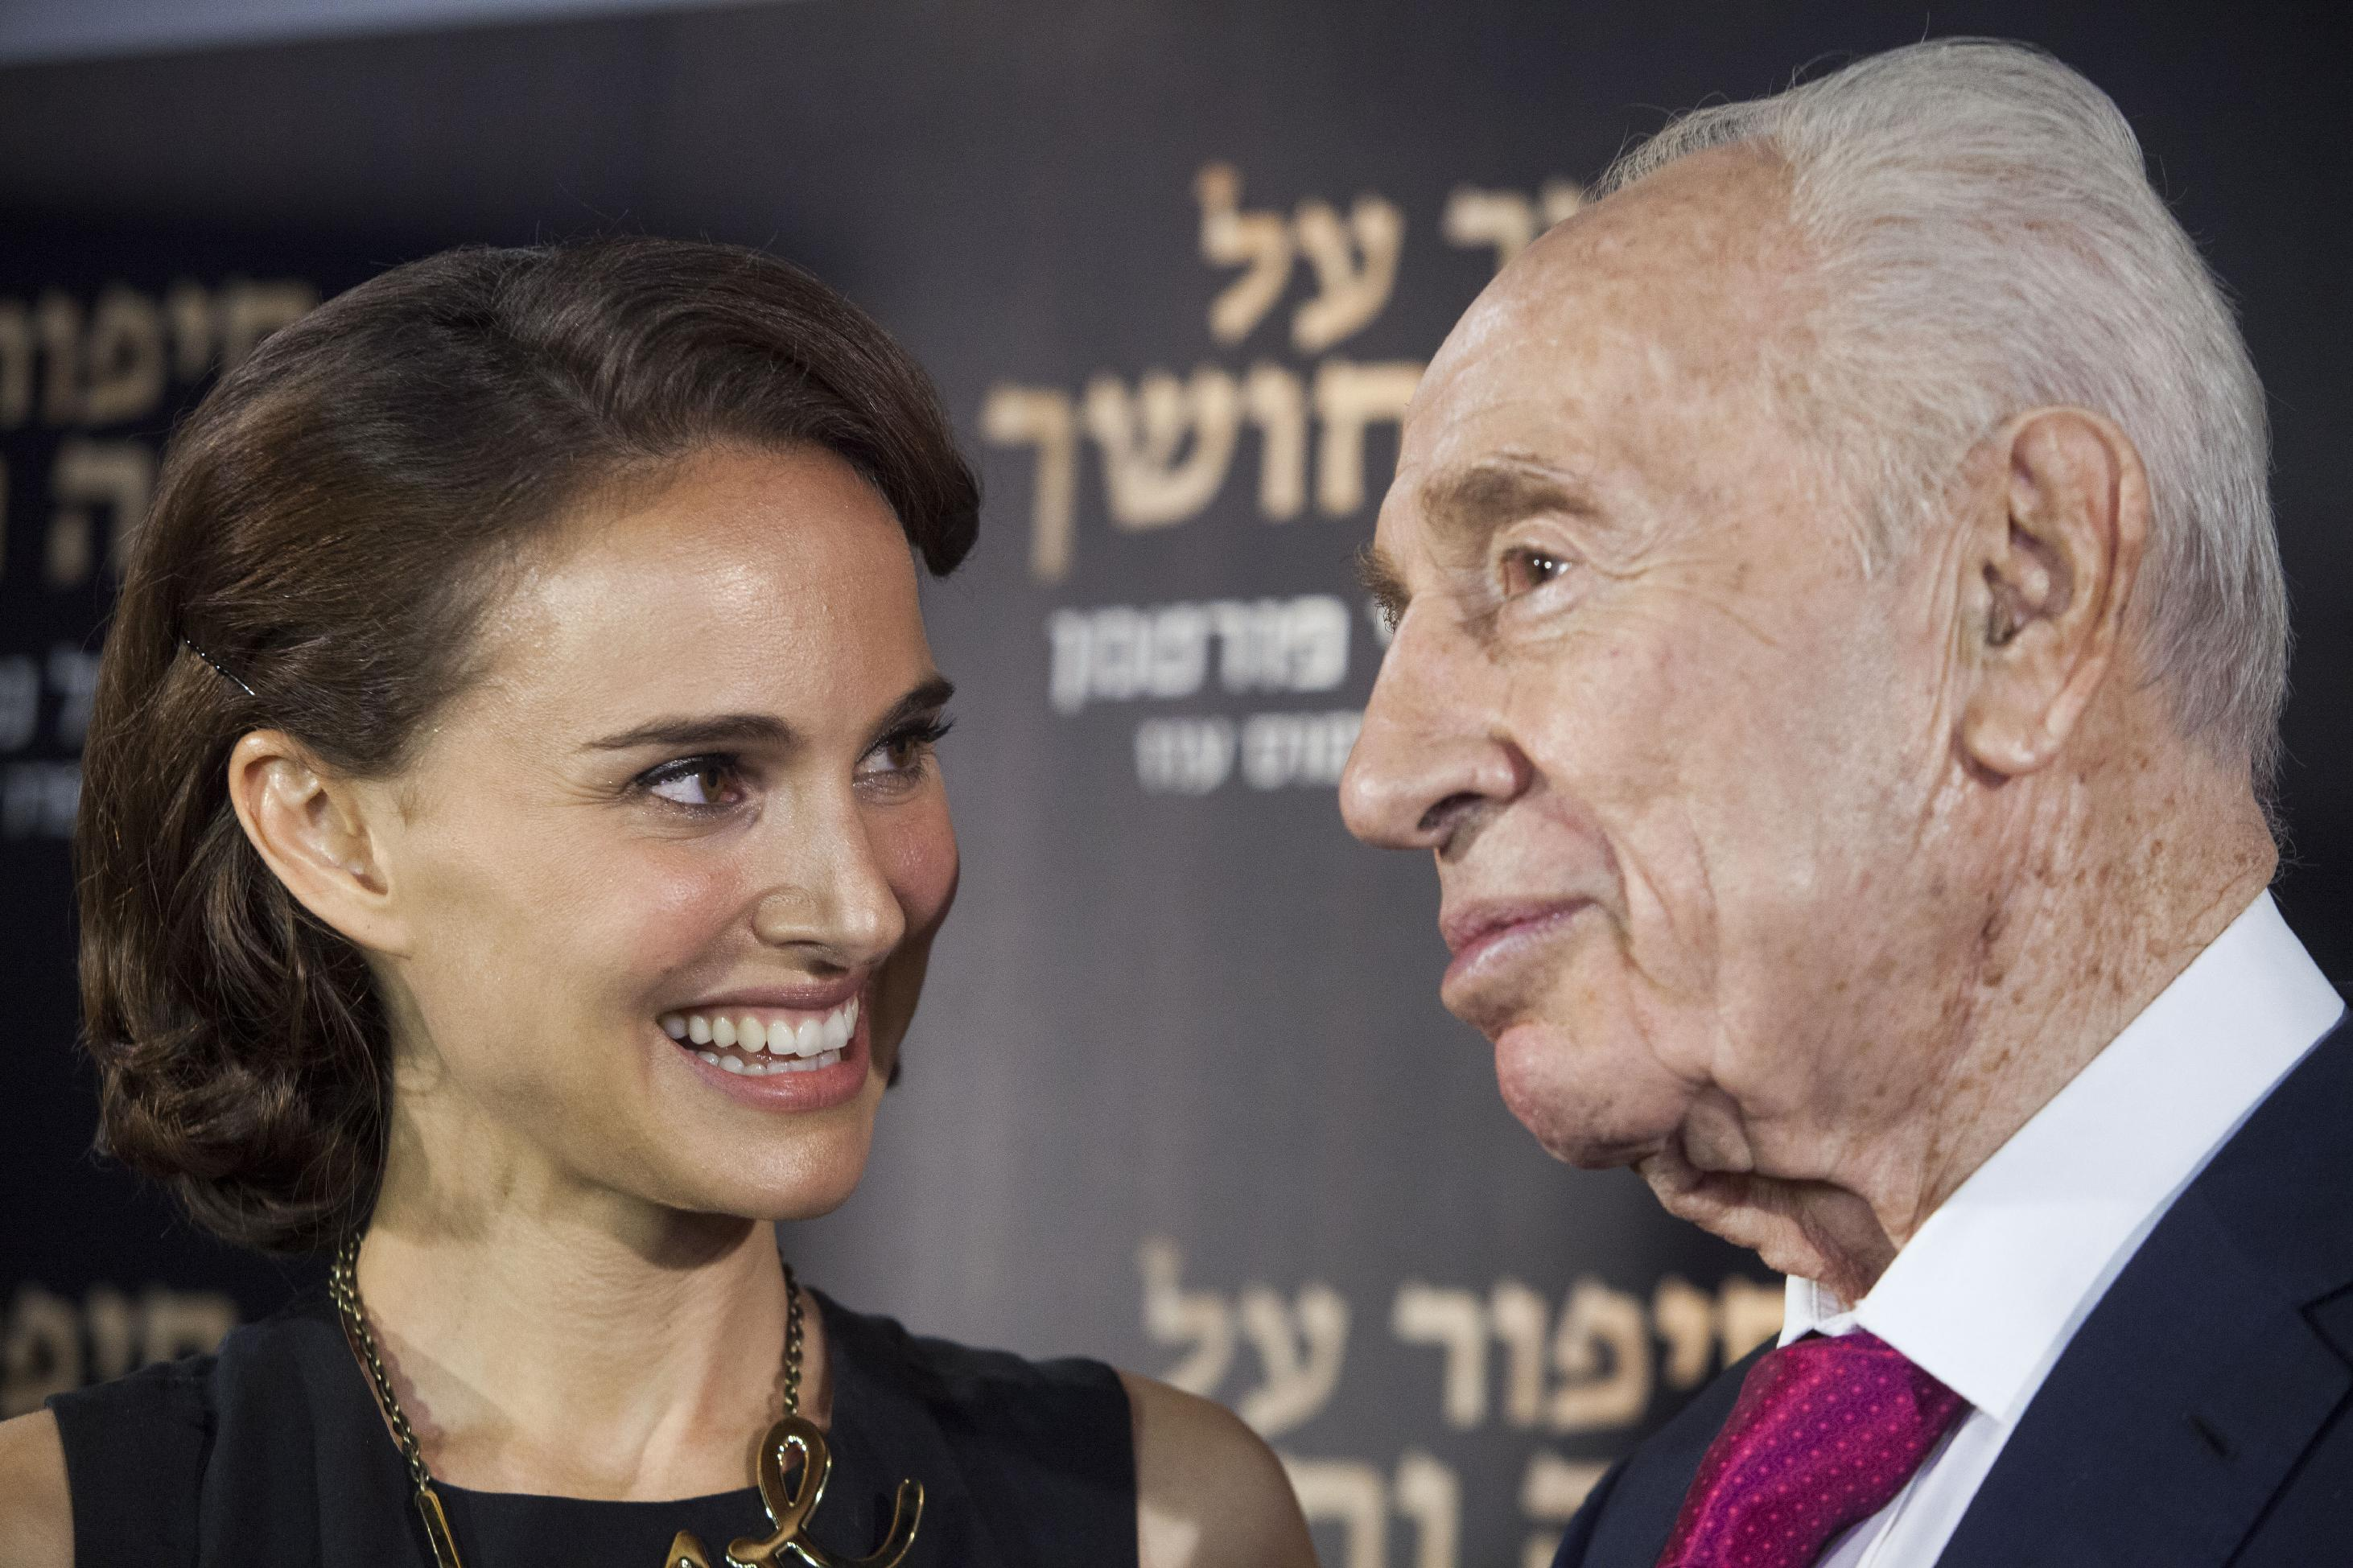 In directorial debut, Portman focuses on her native Israel